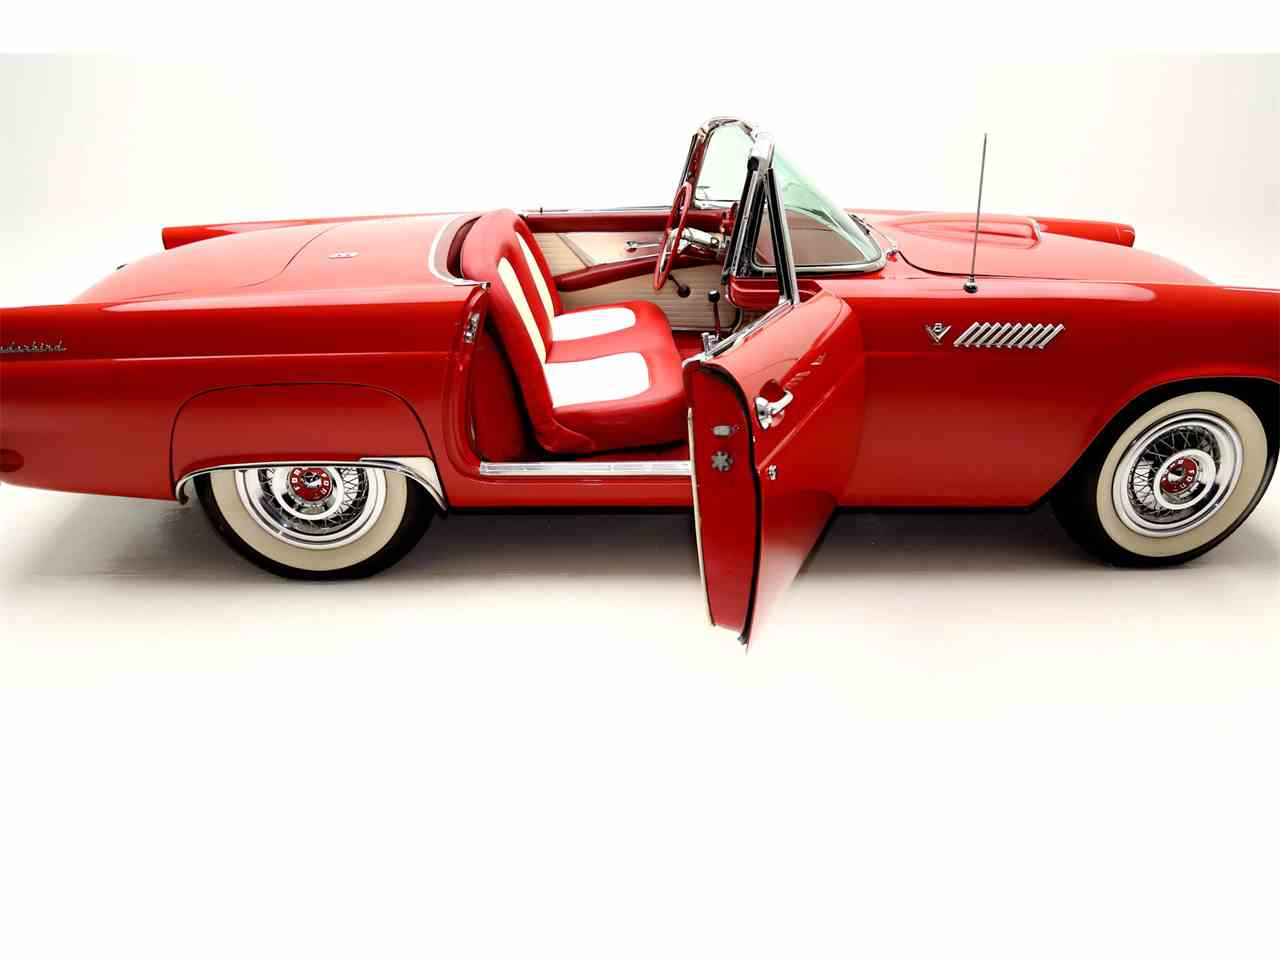 Large Picture of Classic '55 Ford Thunderbird - $39,900.00 - JREE